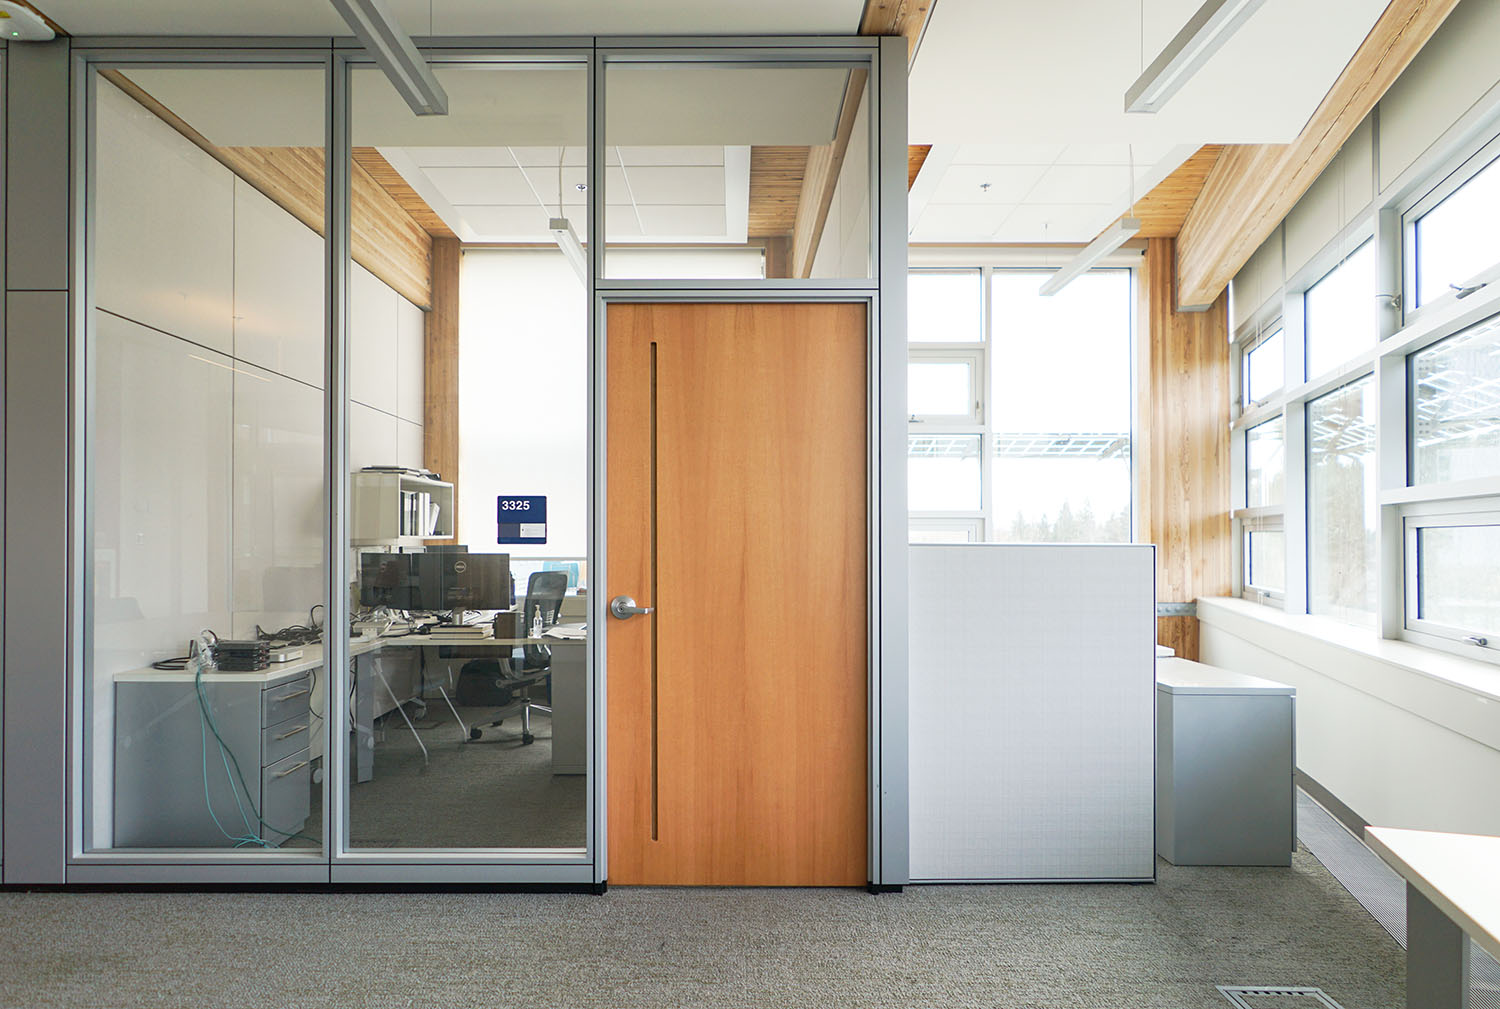 COMMERCIAL   A FLEXIBLE SOLUTION TO MEET VENTILATION REQUIREMENTS